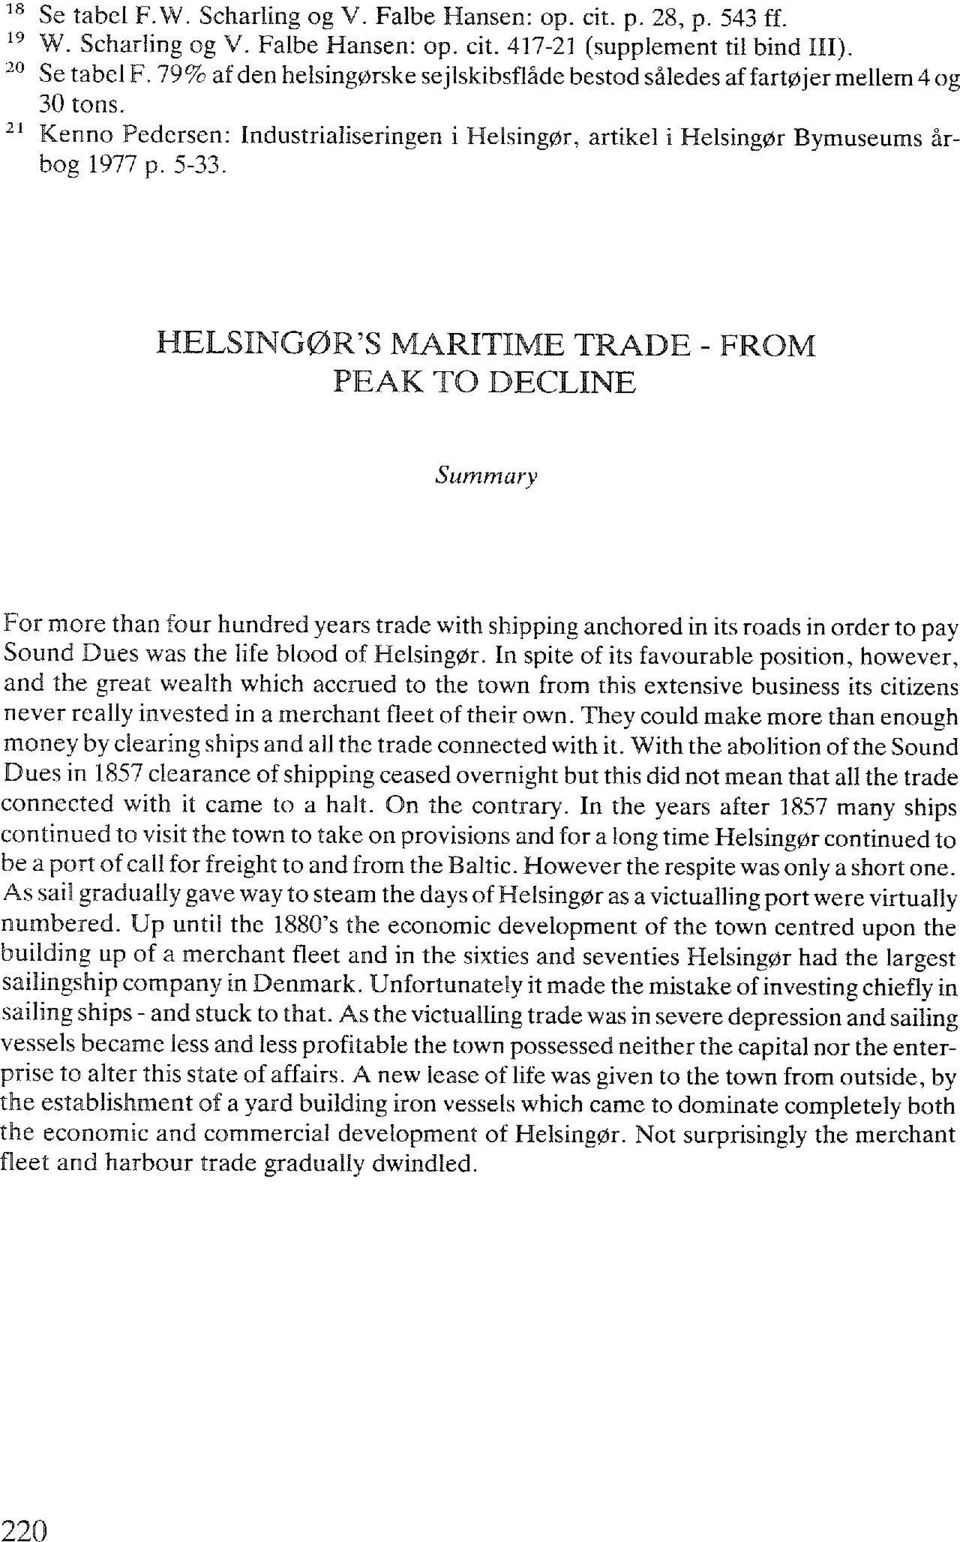 HELSINGØR'S MARITIME TRADE - FROM PEAK TO DECLINE Summary For more than four hundred years trade with shipping anchored in its roads in order to pay Sound Dues was the life blood of Helsingør.